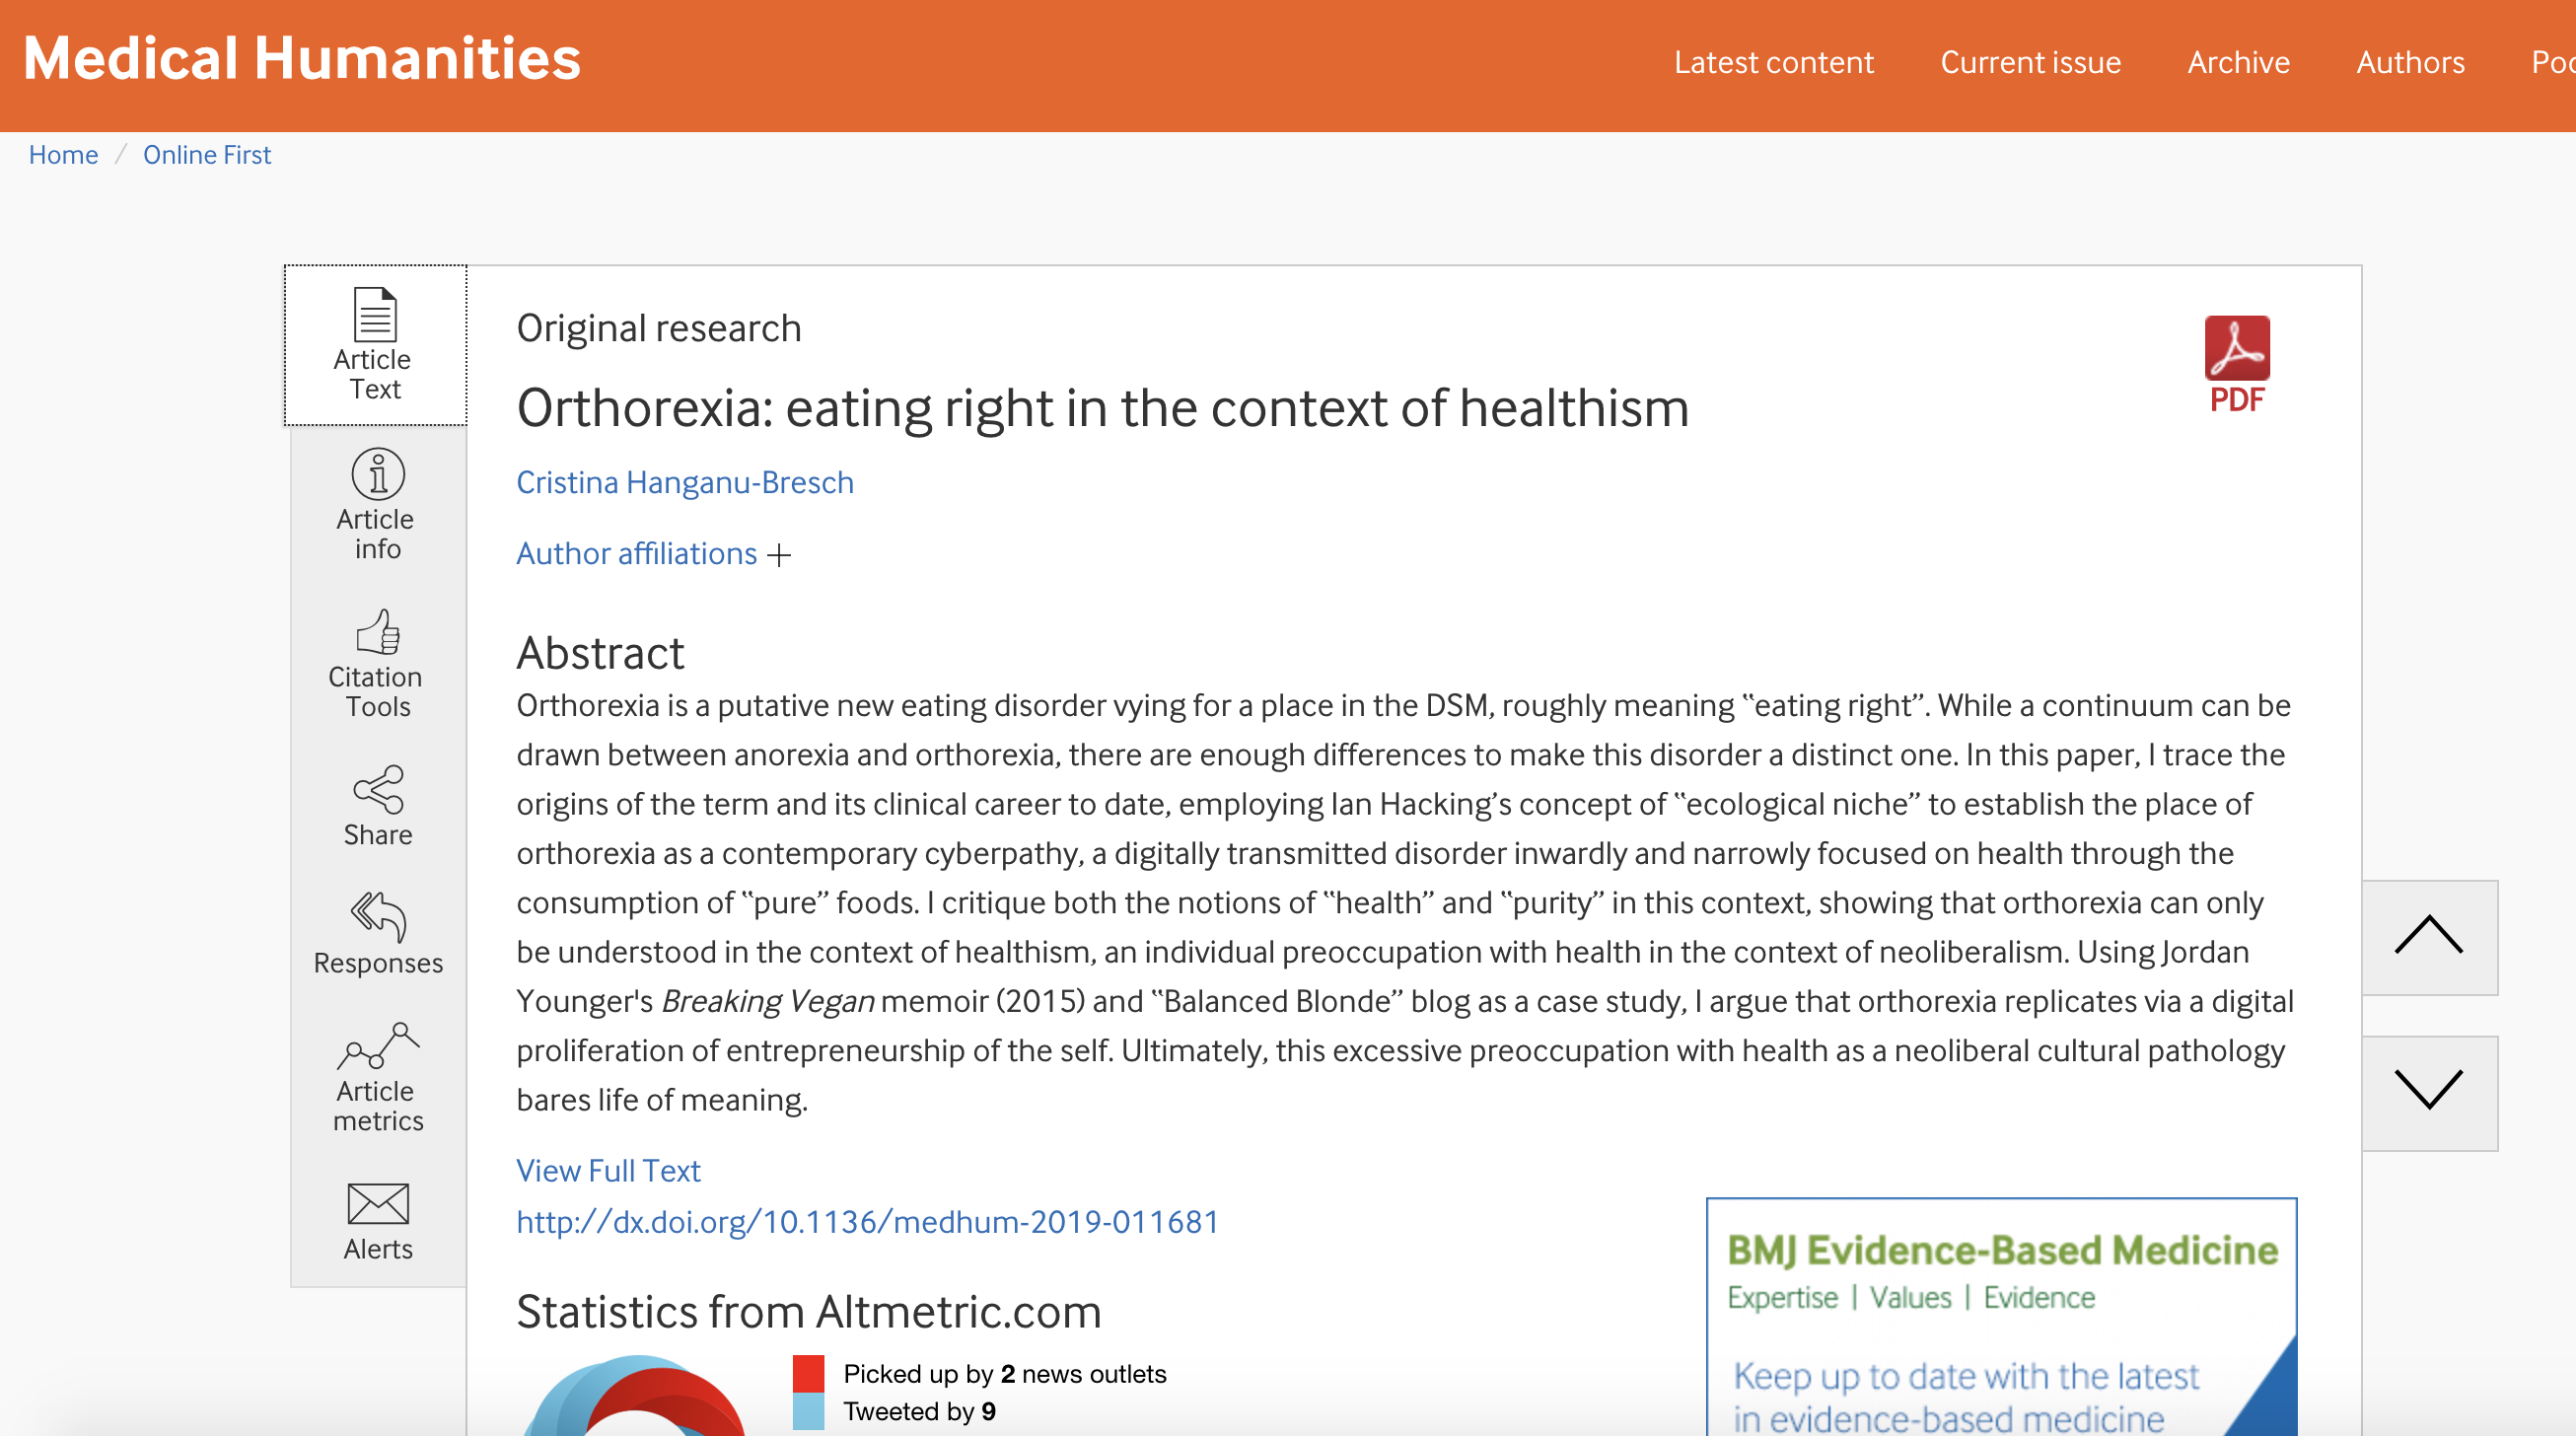 Orthorexia: Eating right in the context of healthiest. Medical Humanities-BMJ, July 2019